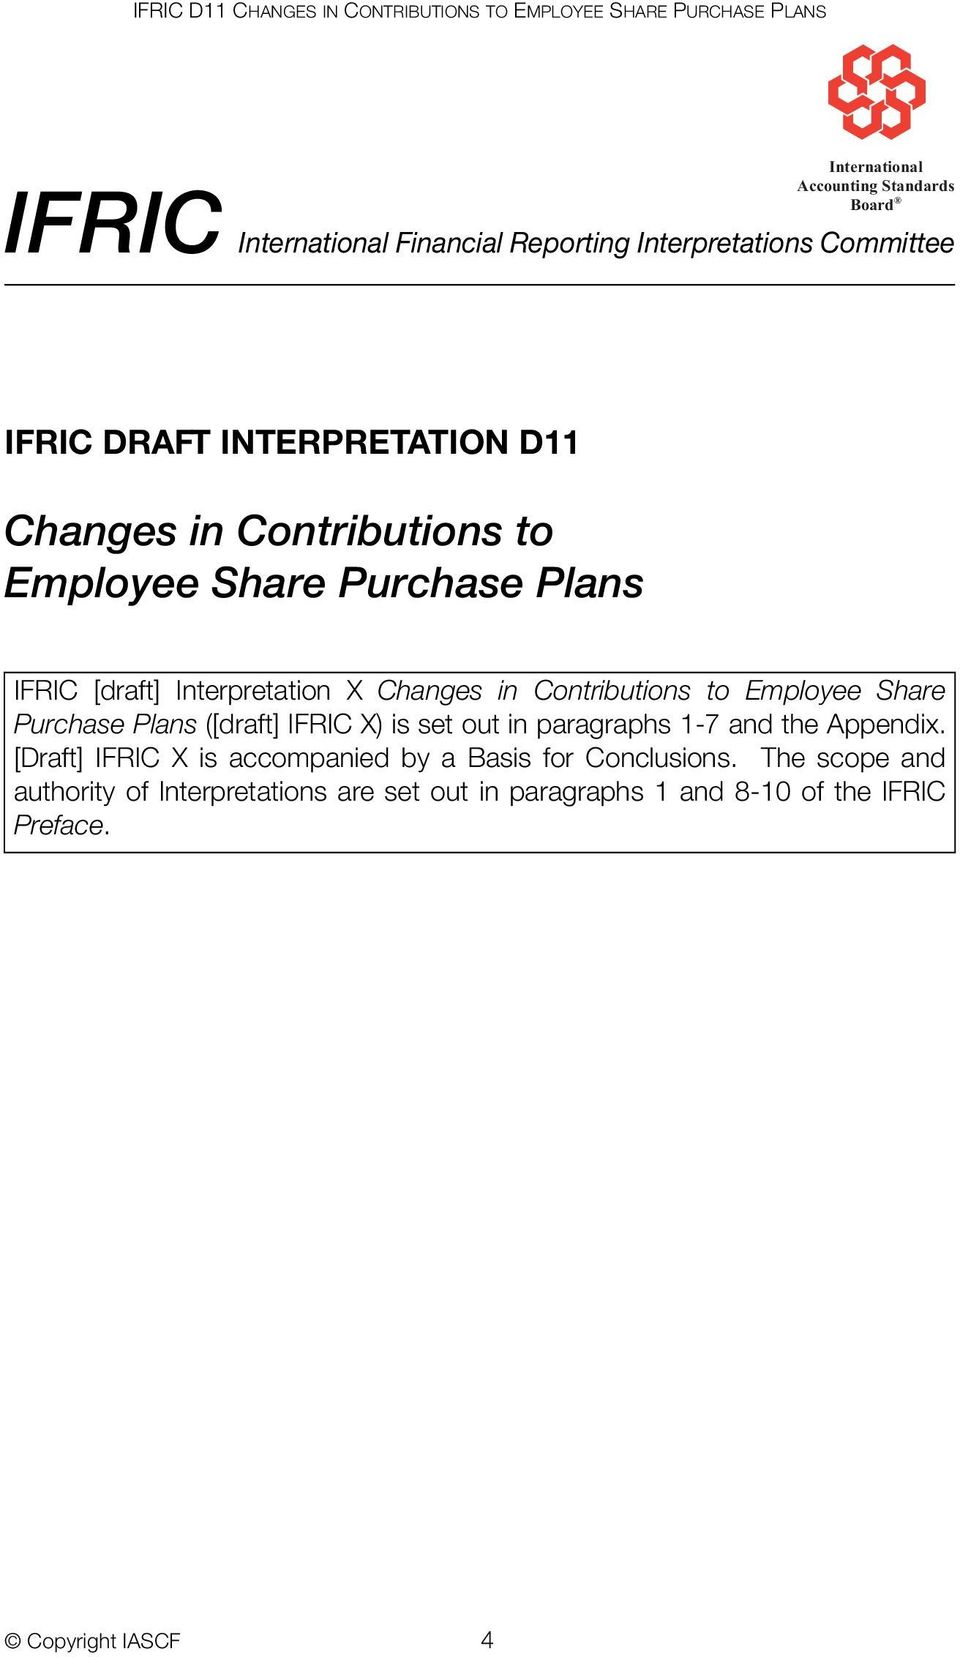 Changes in Contributions to Employee Share Purchase Plans ([draft] IFRIC X) is set out in paragraphs 1-7 and the Appendix.